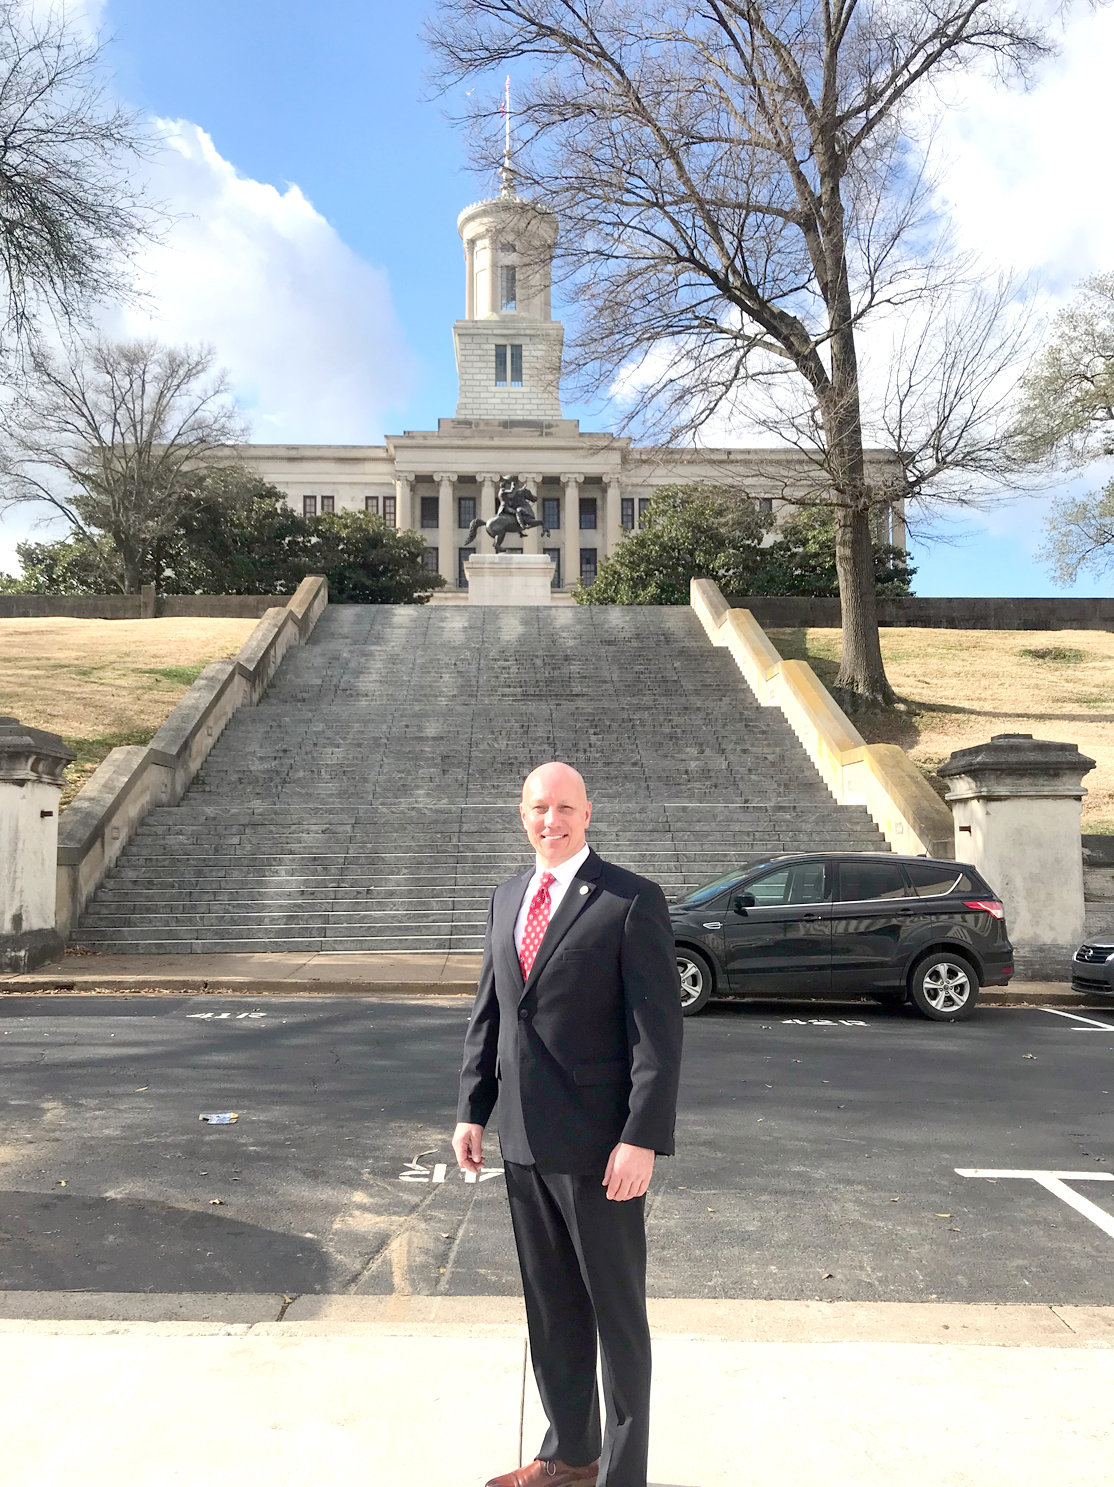 STATE REP. MARK HALL stands outside the Tennessee State Capitol before entering the building for his swearing in as a freshman member of the Tennessee House of Representatives last week in Nashville. Hall was elected in November and replaces Kevin Brooks, who now serves as Cleveland mayor.